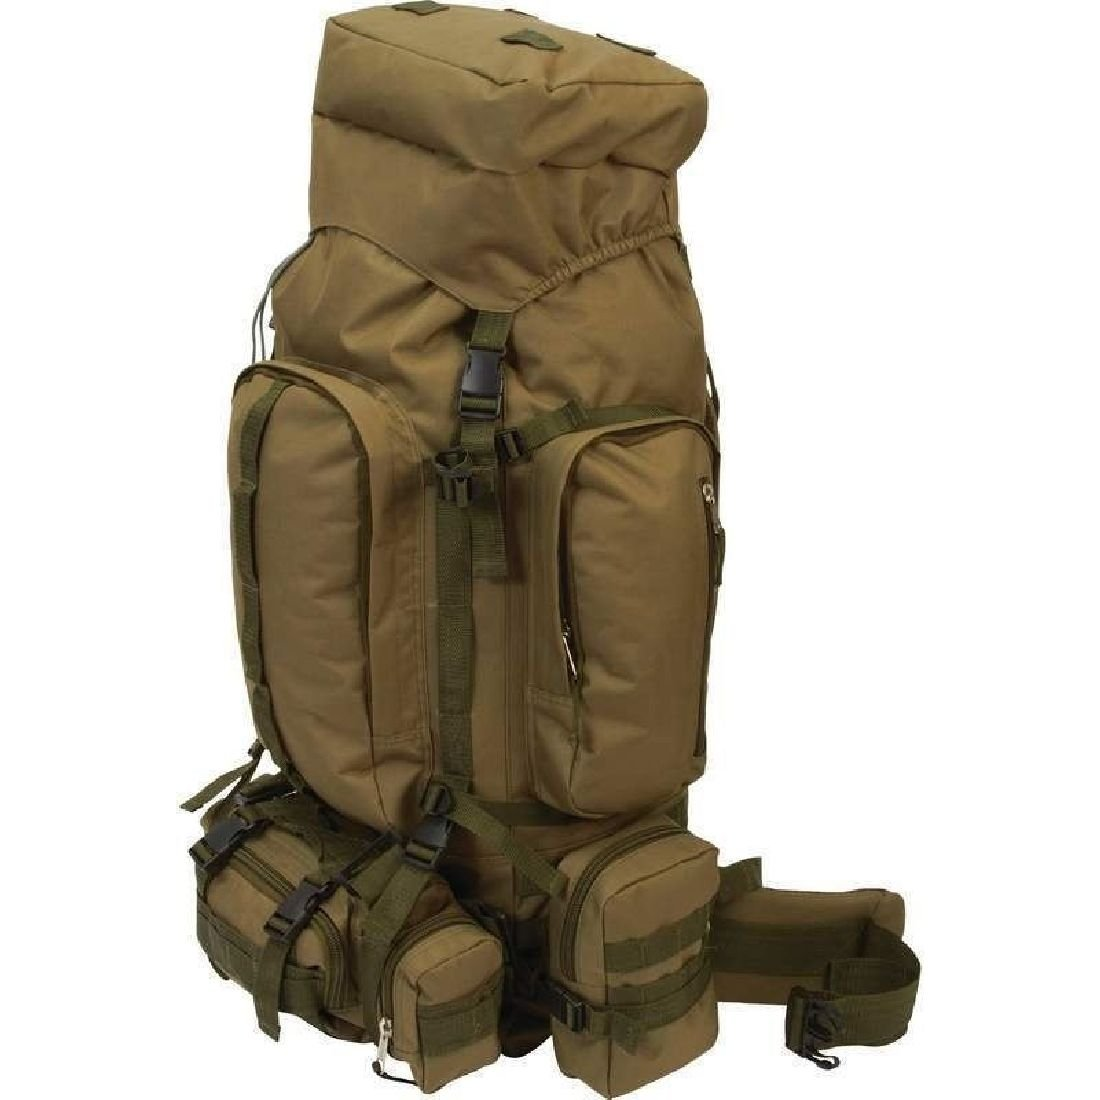 Big 35'' Olive Green Backpack Day Pack Hiking Mountaineer Camping Mountain Bag by ZIZI SPORTS SUPPLY (Image #1)